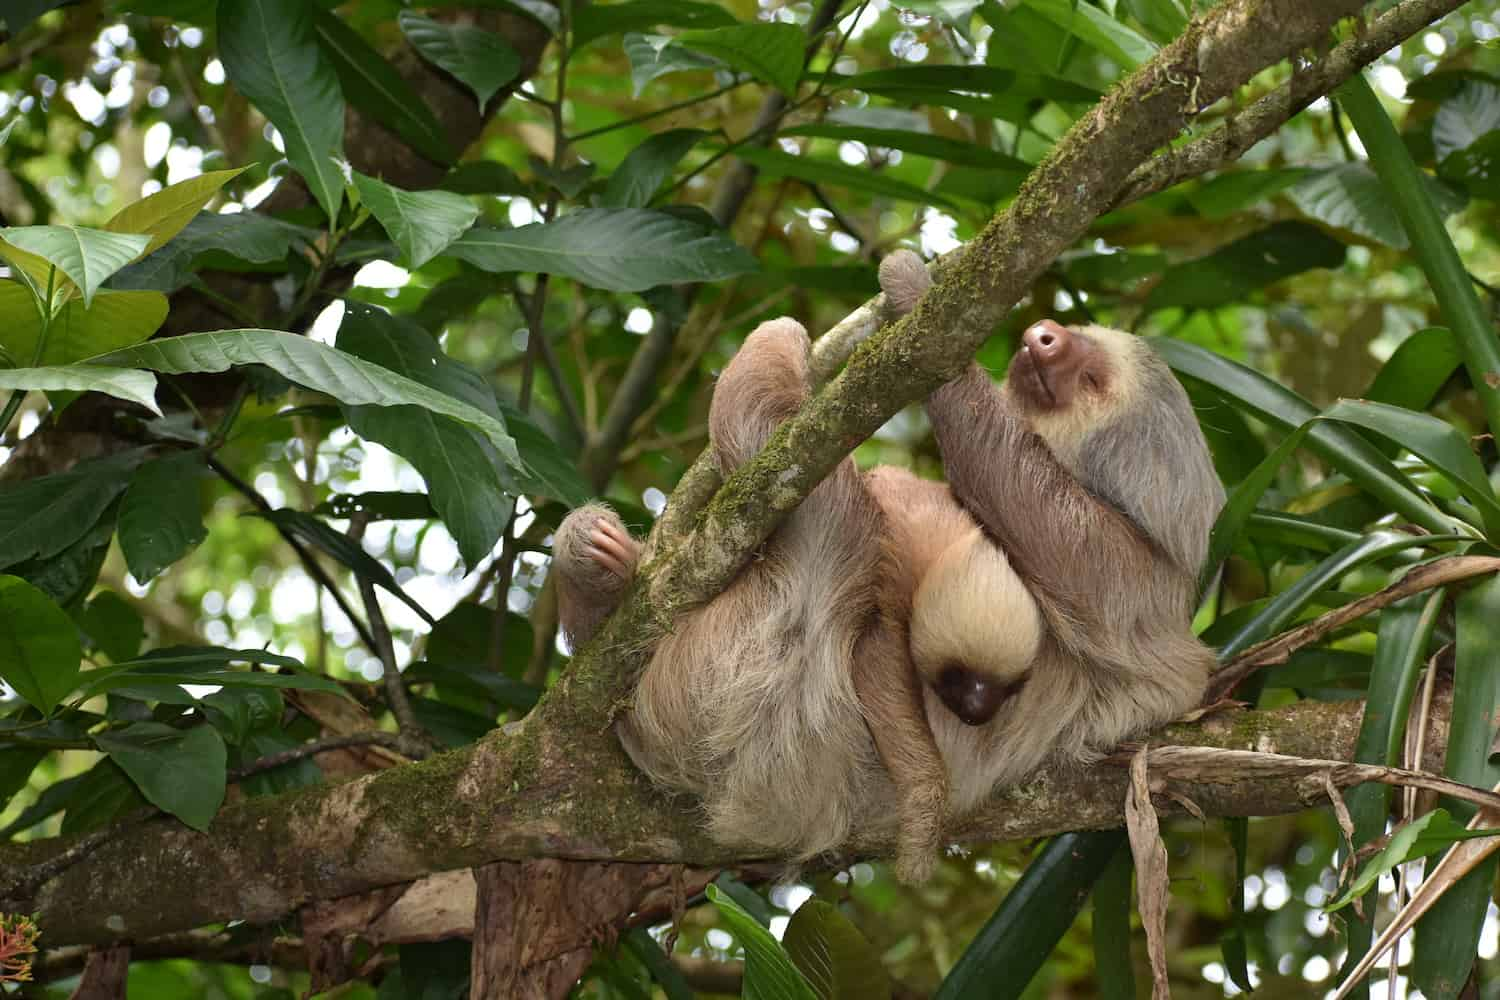 A sloth mother carries her baby.